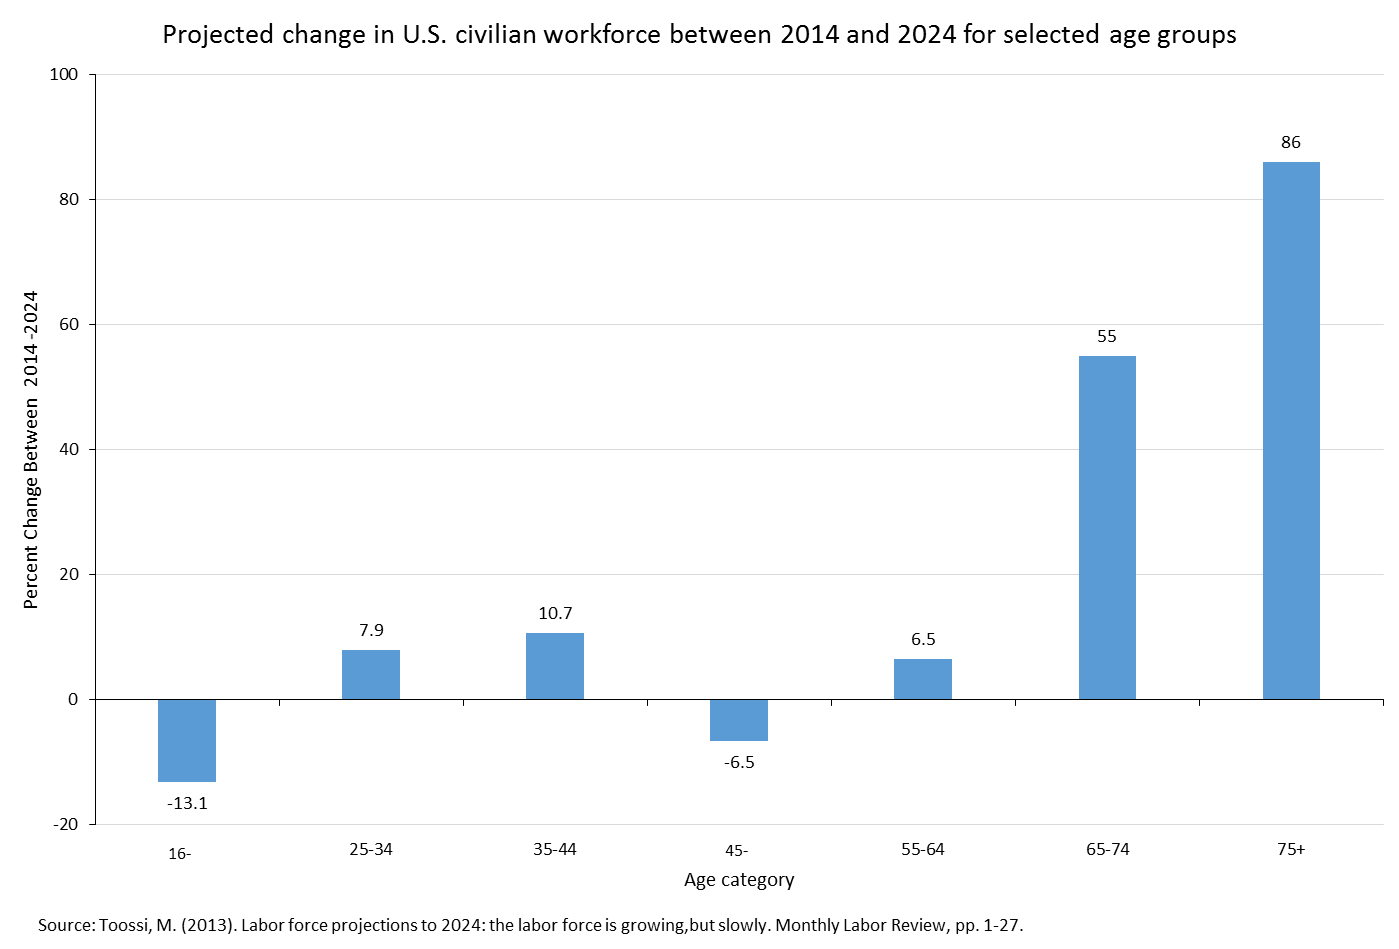 Projected change in U.S. civilian workforce between 2012 and 2022 for age groups ranging from 16 to 75 years of age.